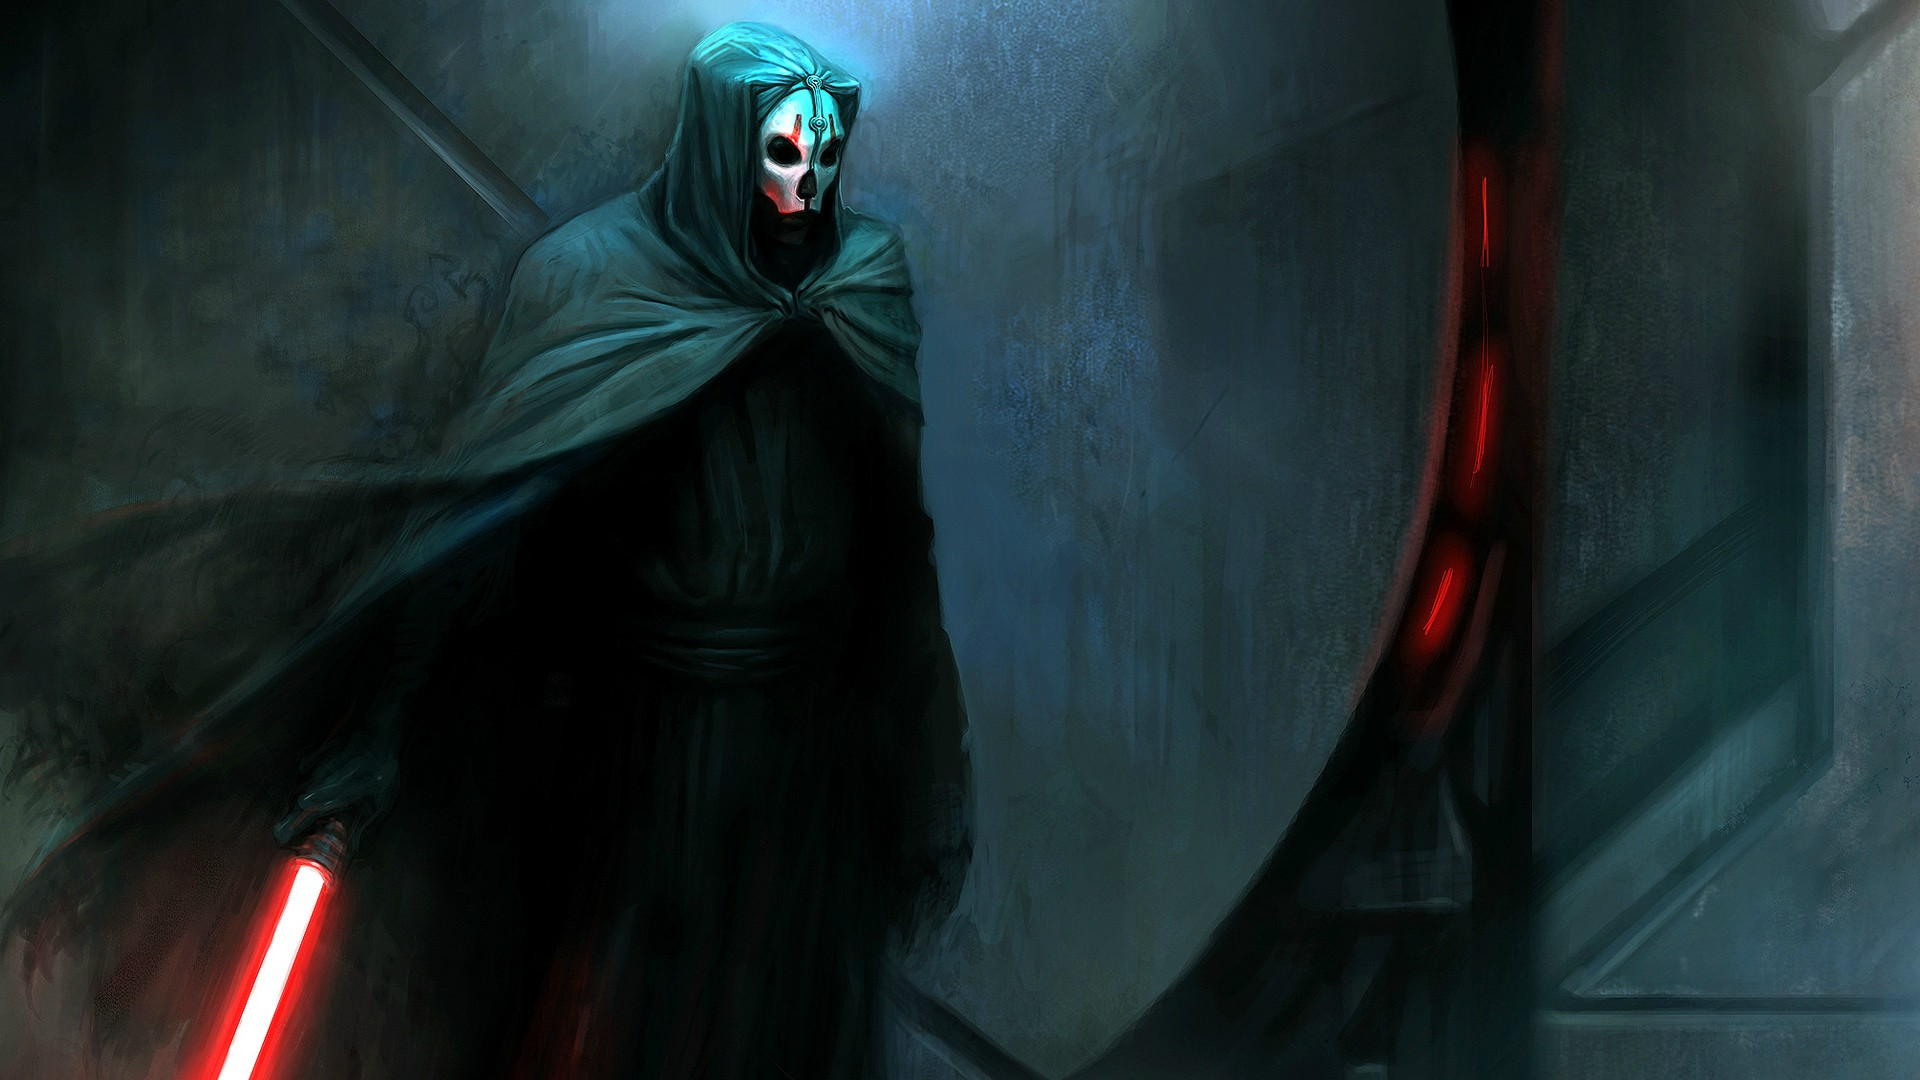 1080p Darth Revan Wallpaper 1920x1080 49 Star Wars Revan